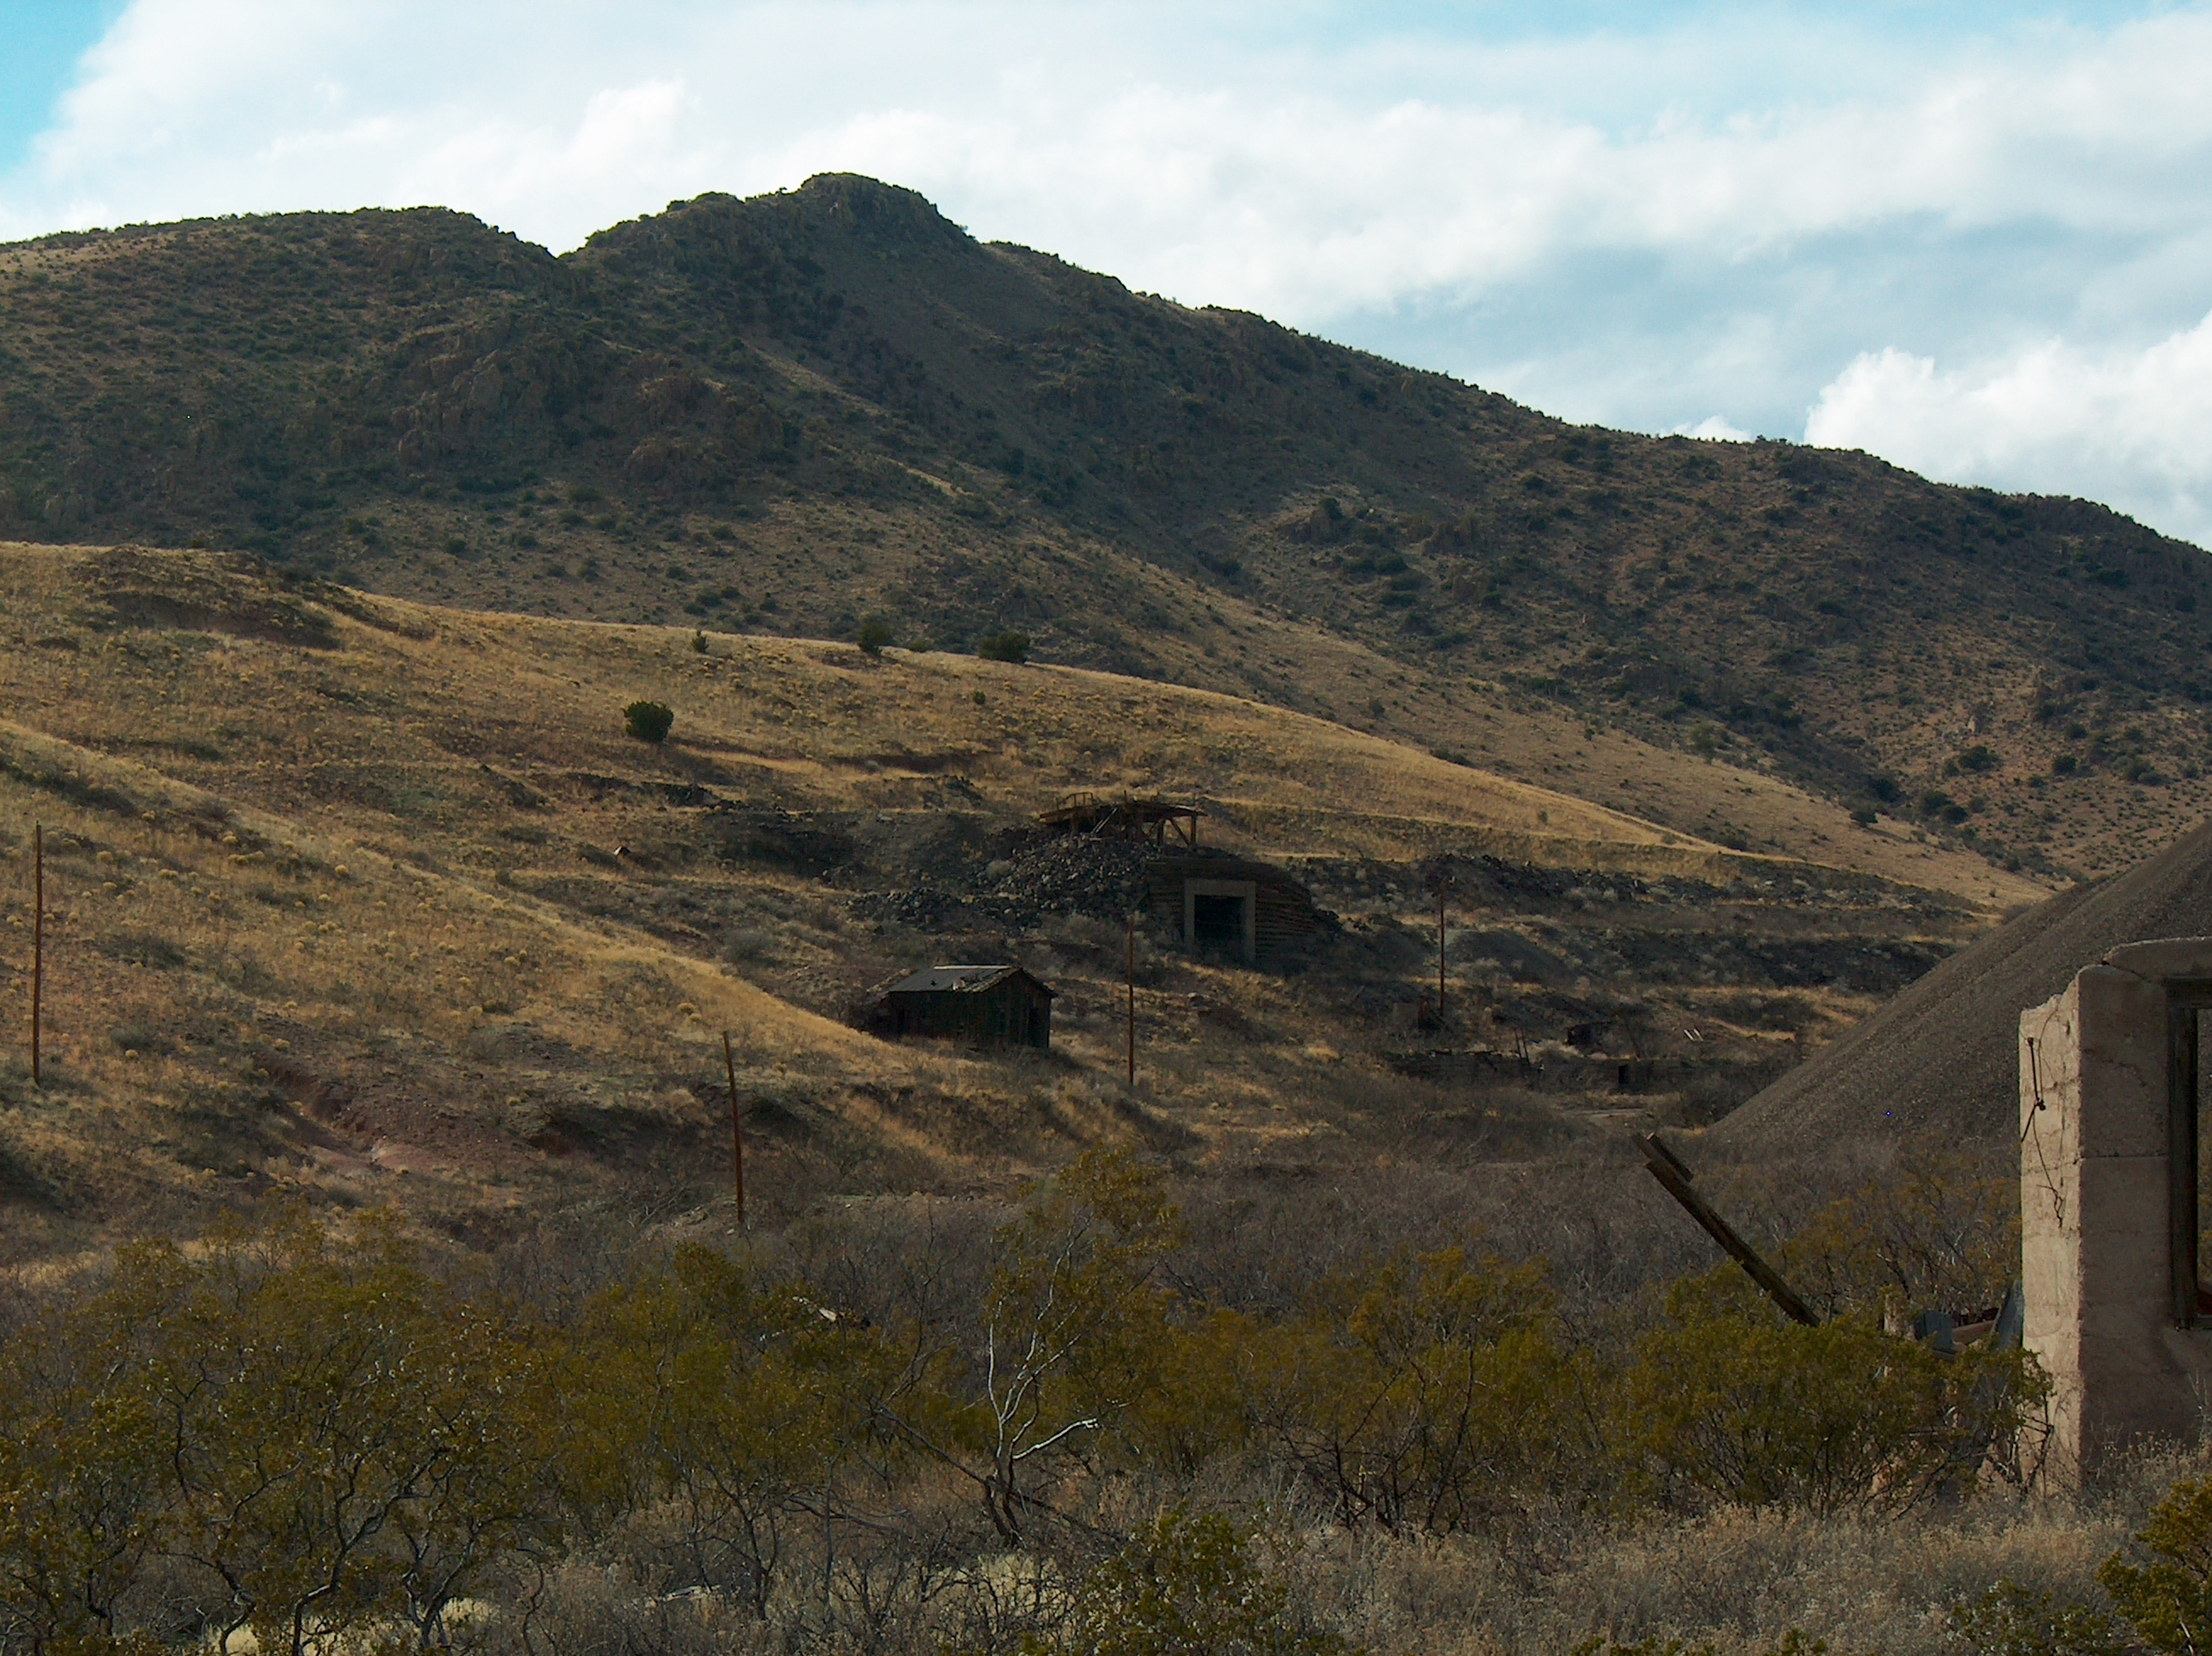 Wood Mountain Elevation : Elevation of whiterock mountain new mexico usa maplogs